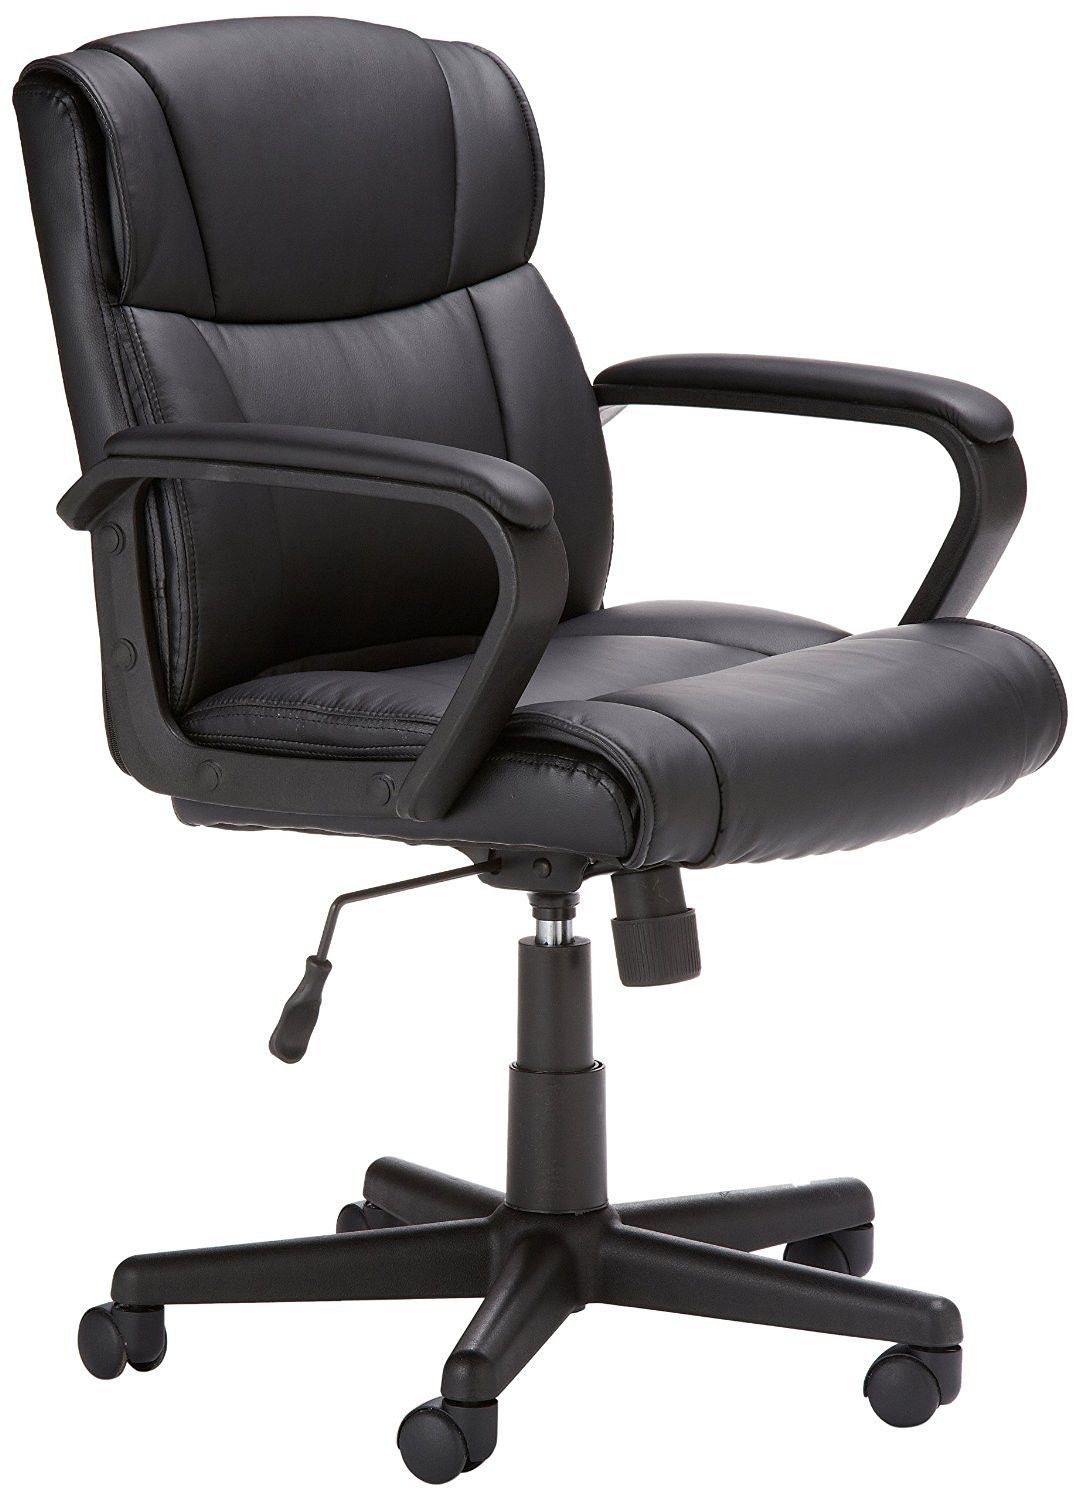 Best ideas about Best Cheap Office Chair . Save or Pin ⭐️ Cheap 2018 fice Chairs Under $200 ⋆ Best Cheap Reviews™ Now.